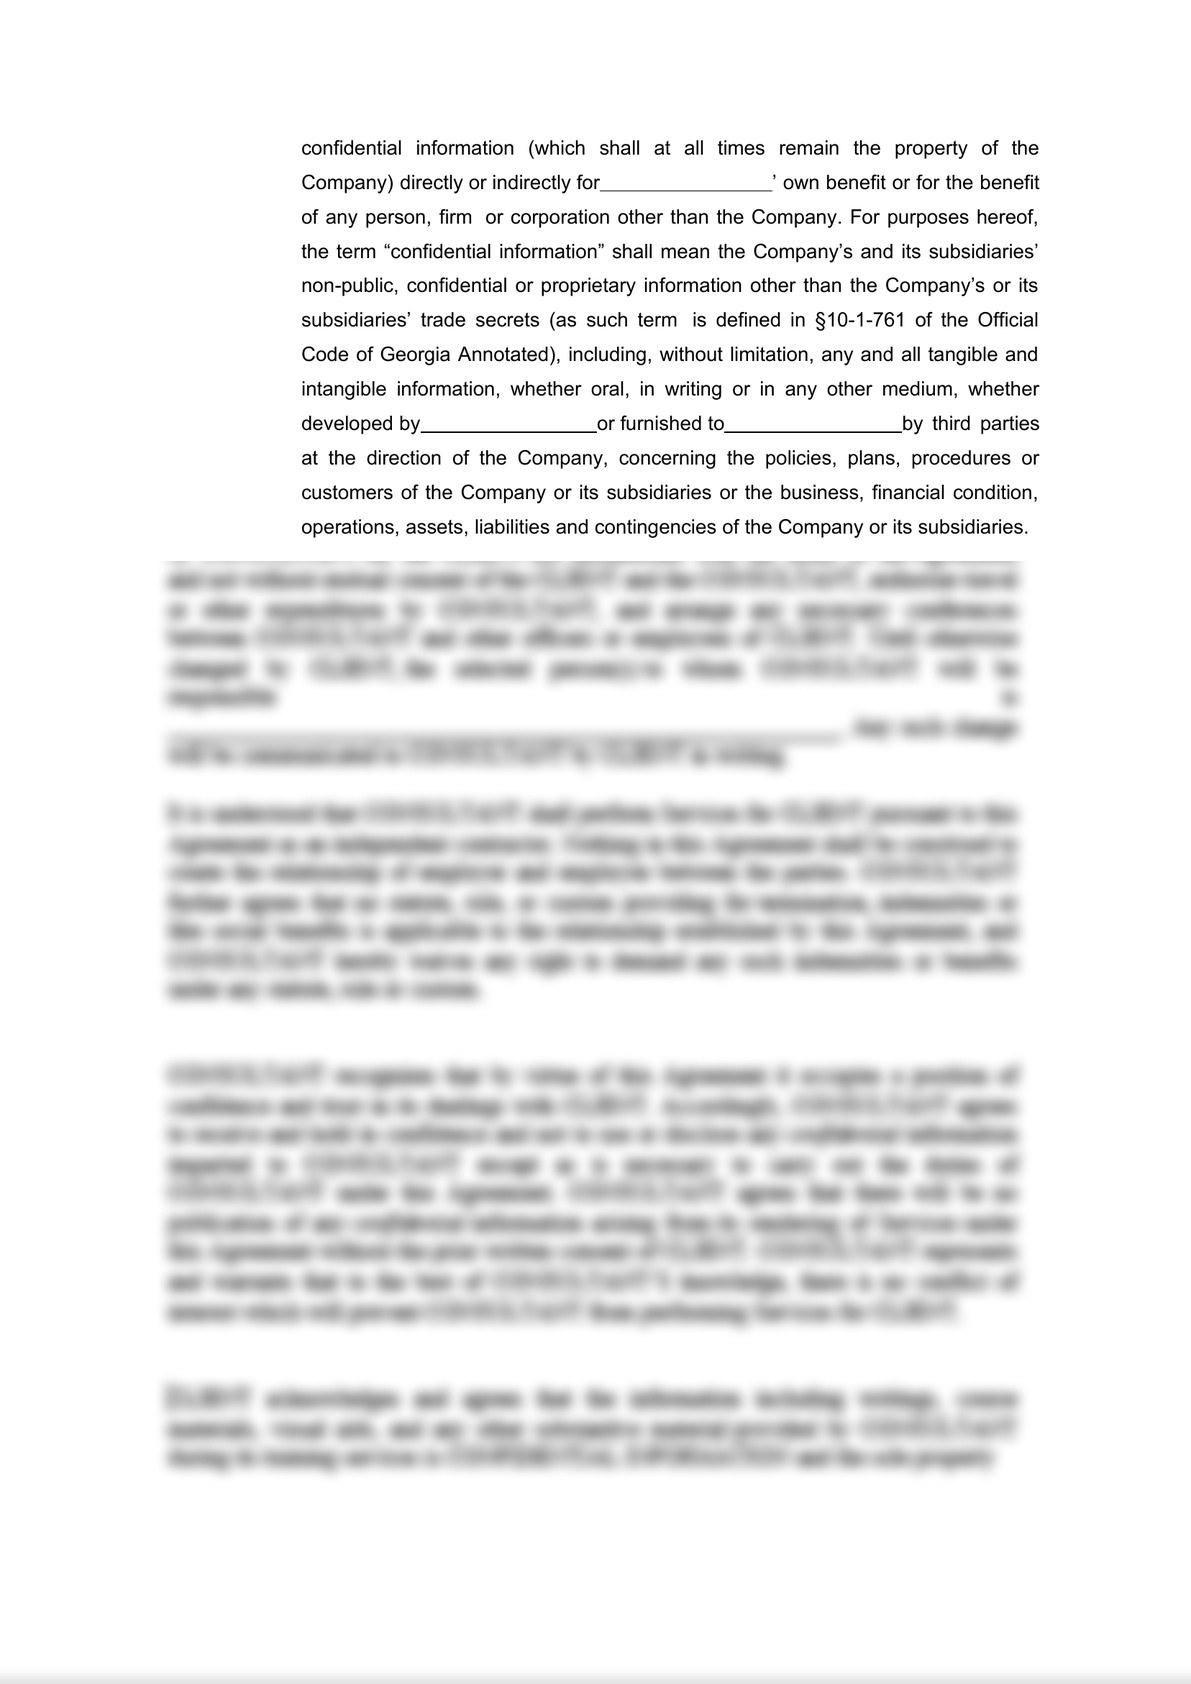 General Commission Agreement-5